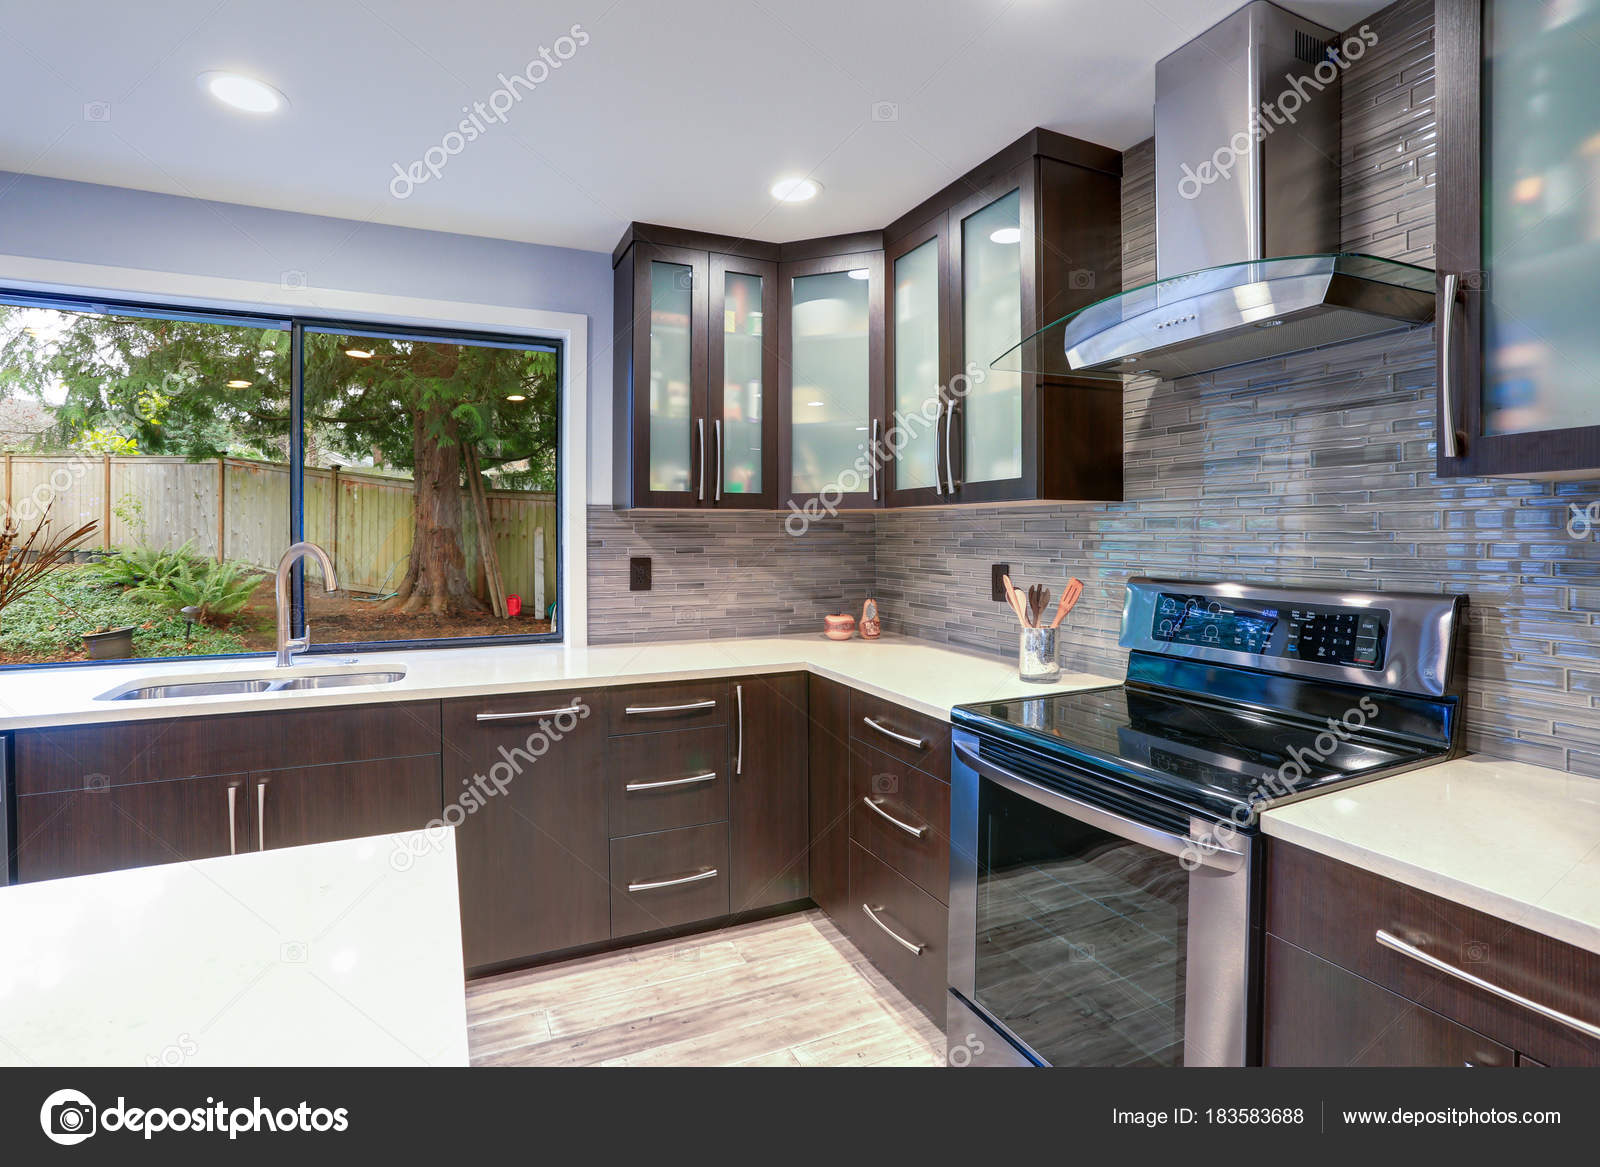 Antique White Kitchen Cabinets With Stainless Steel